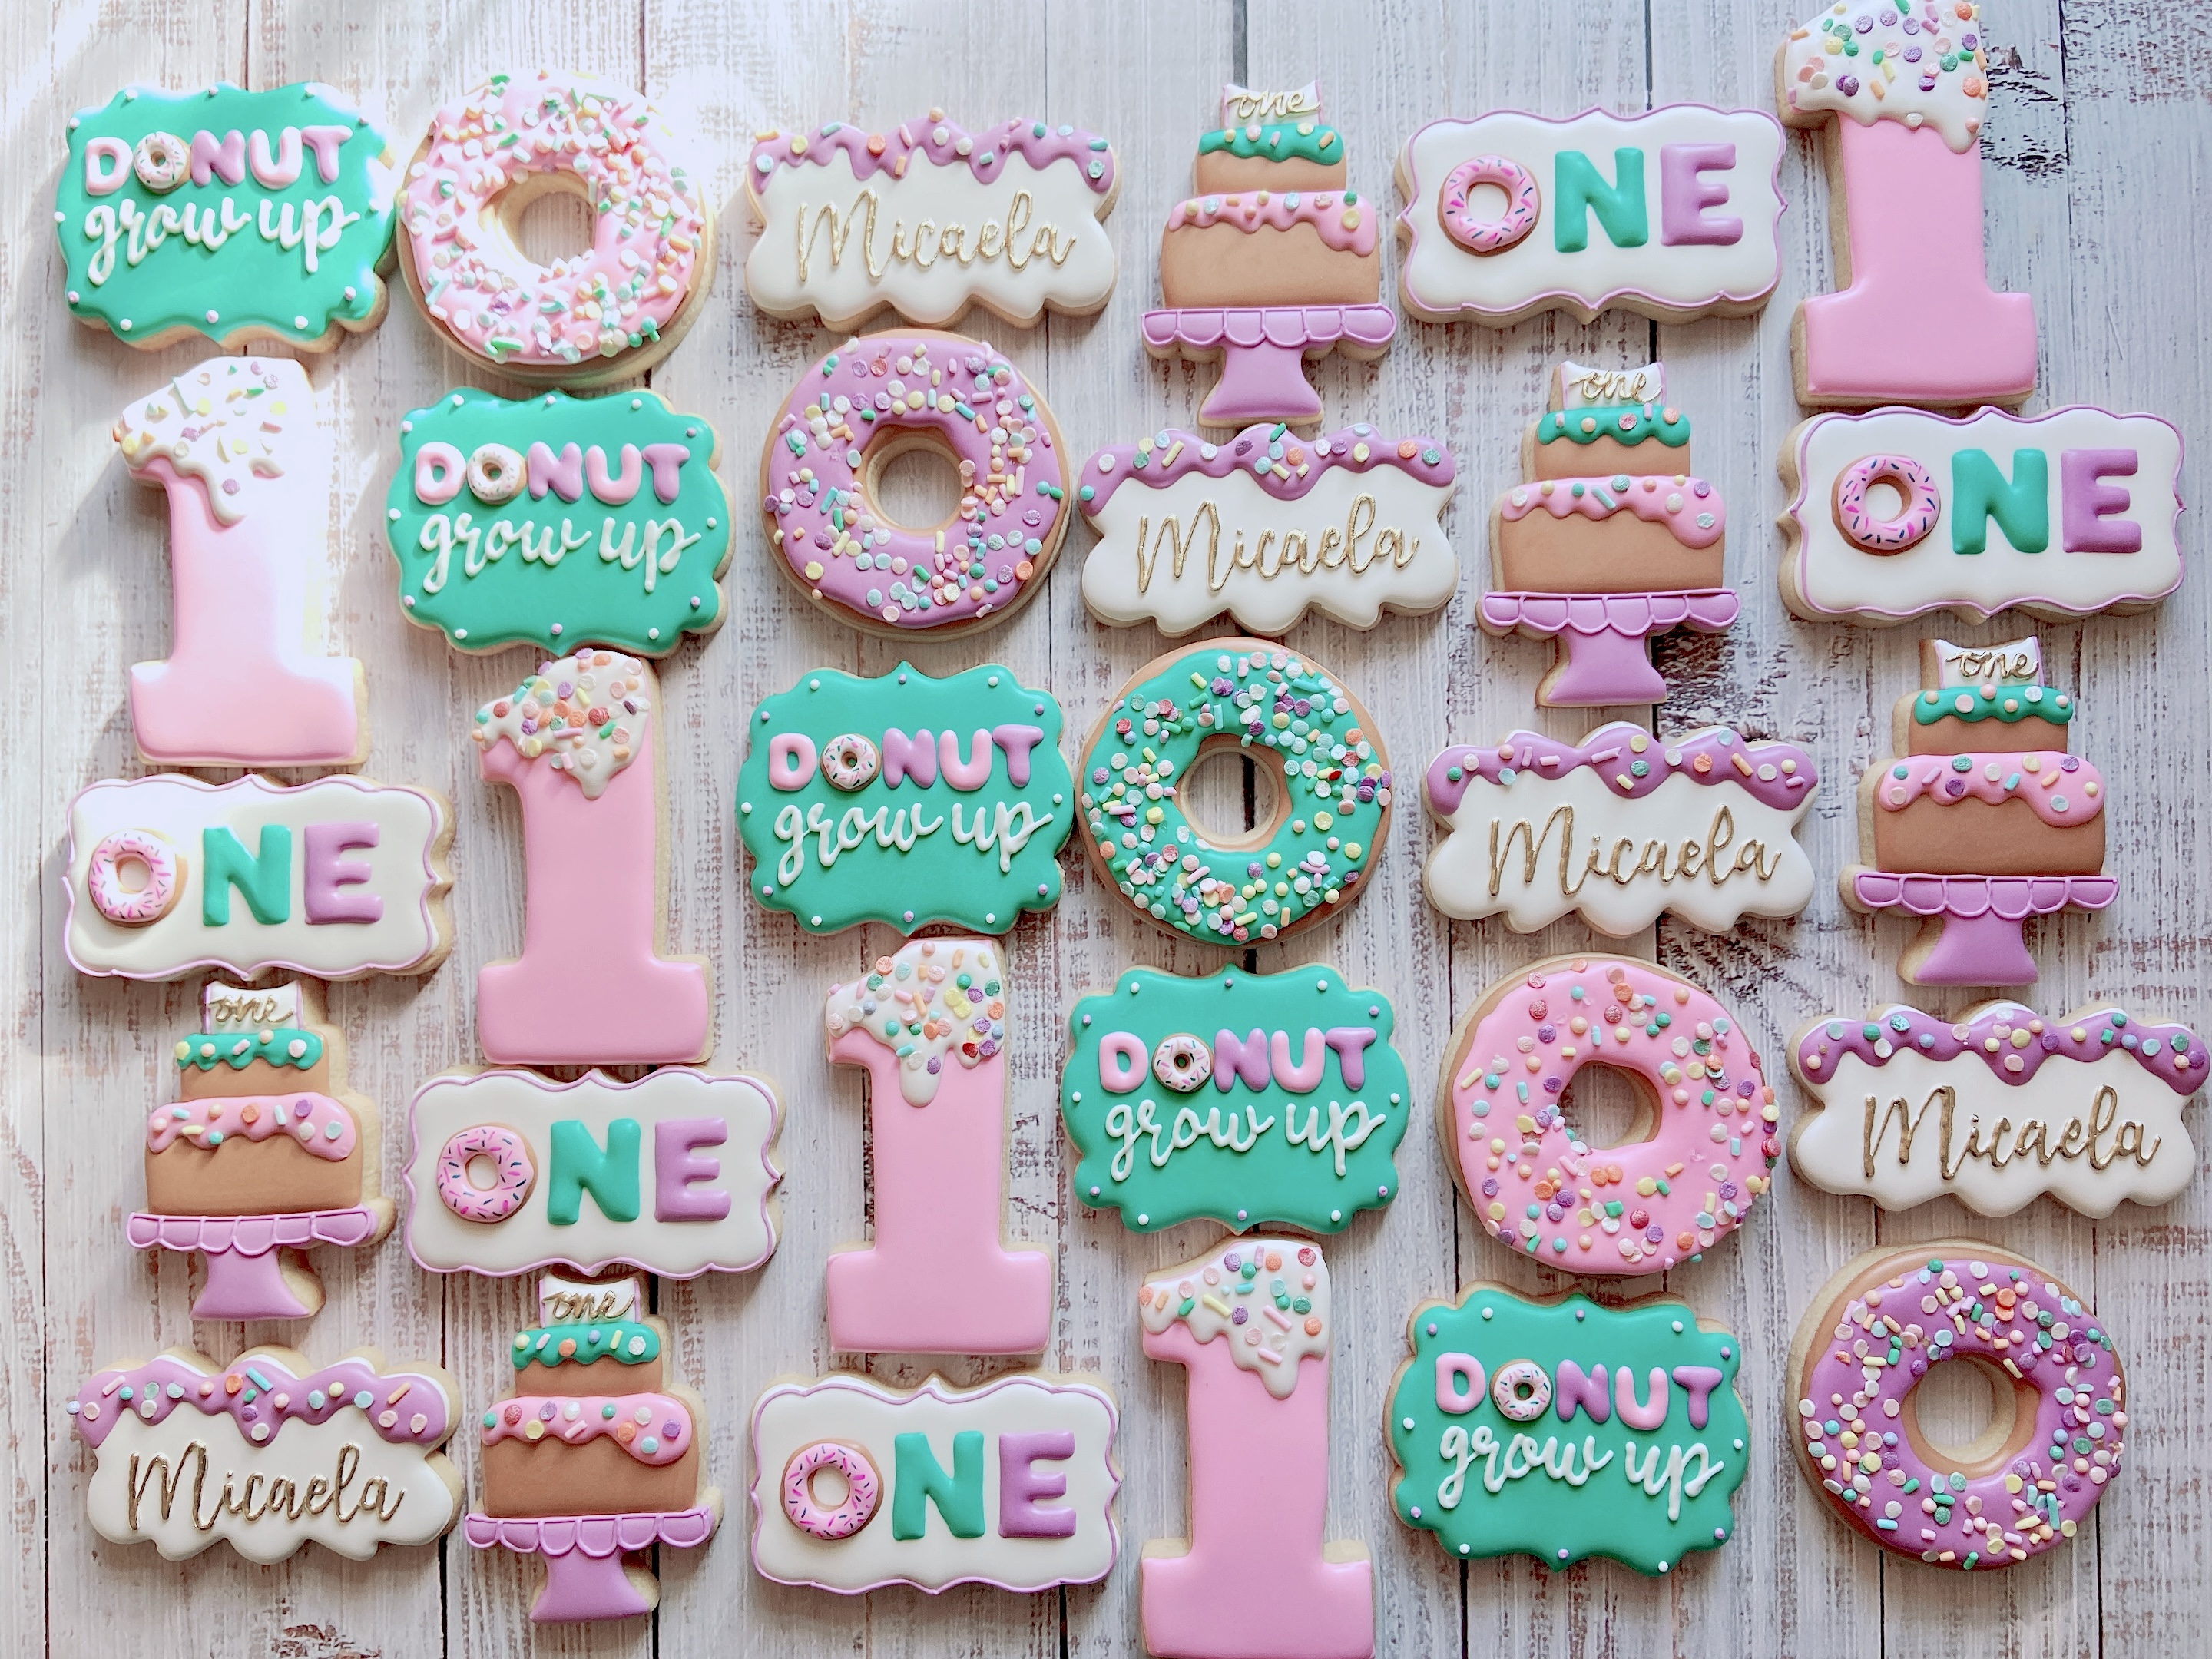 Donut Grow Up Cookies